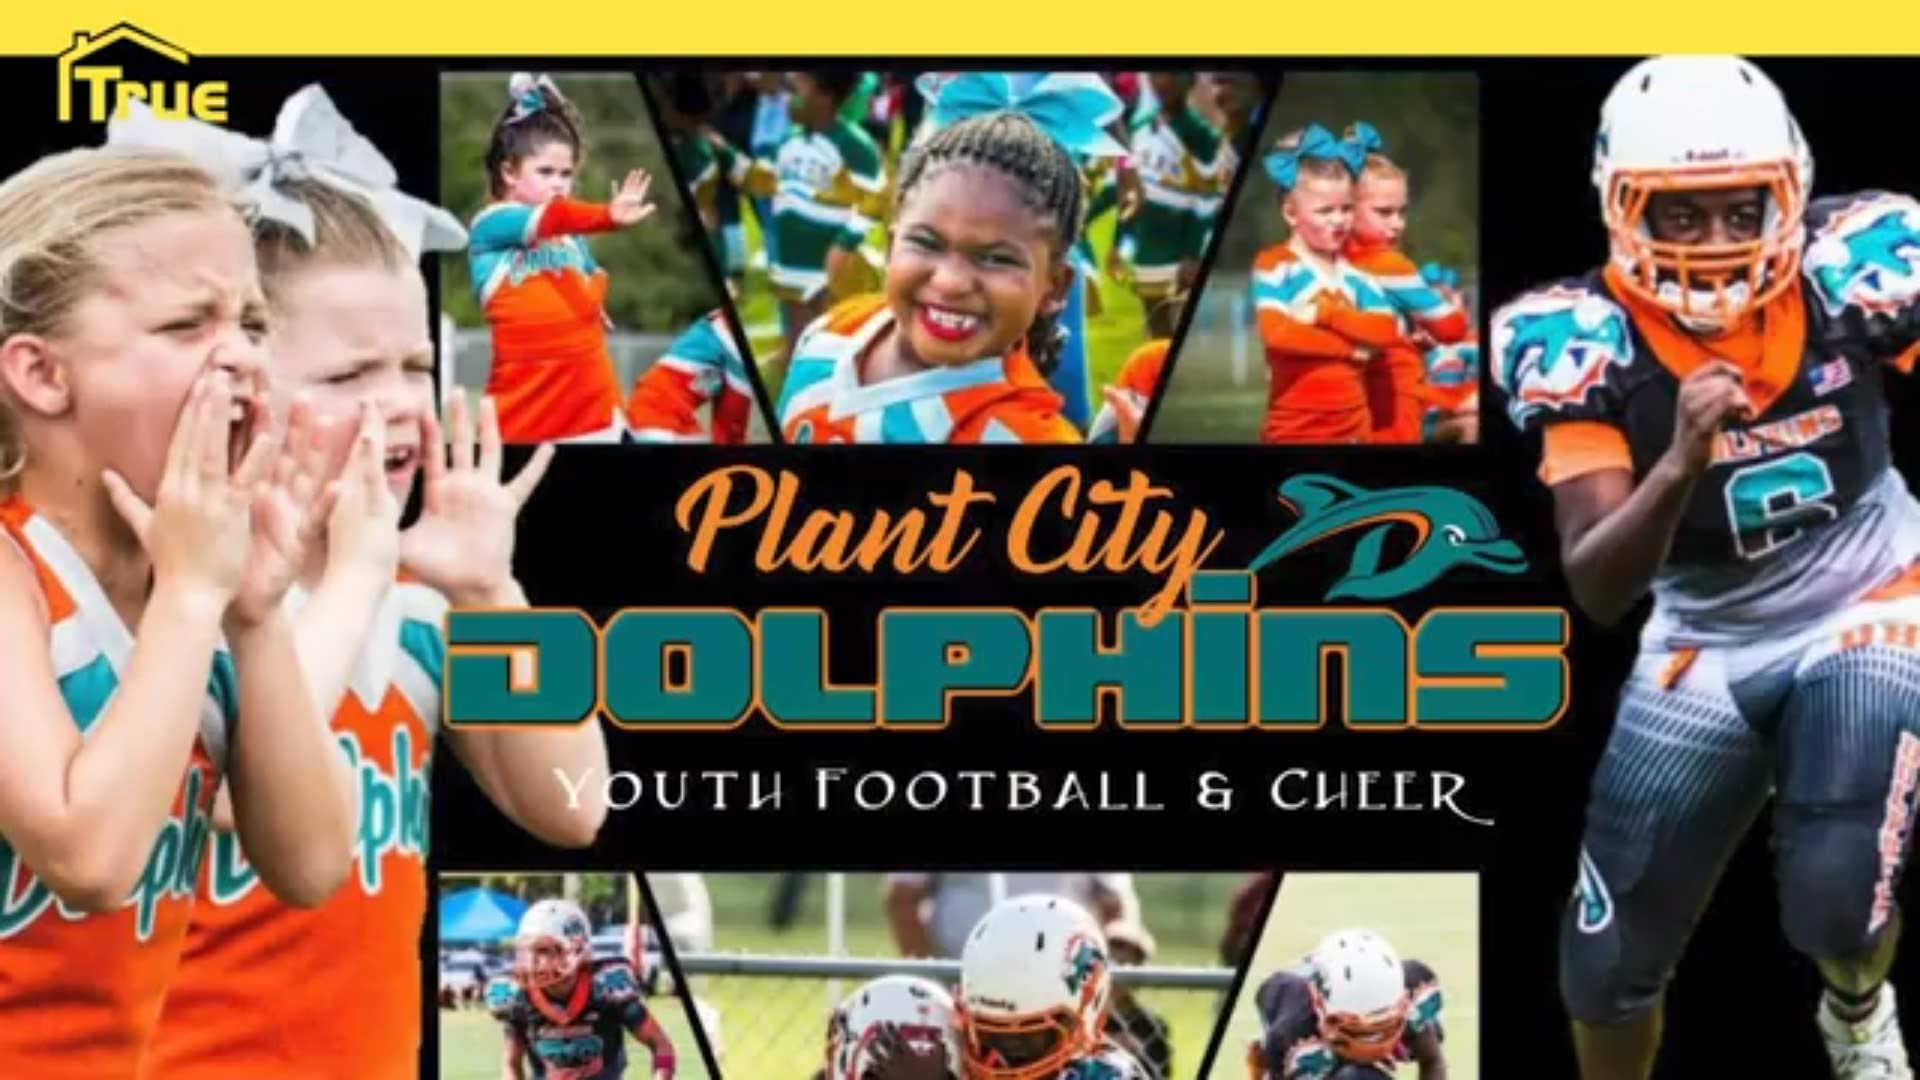 Replacing a 25 Year Old Sink for Plant City Dolphins Youth Football & Cheer Organization